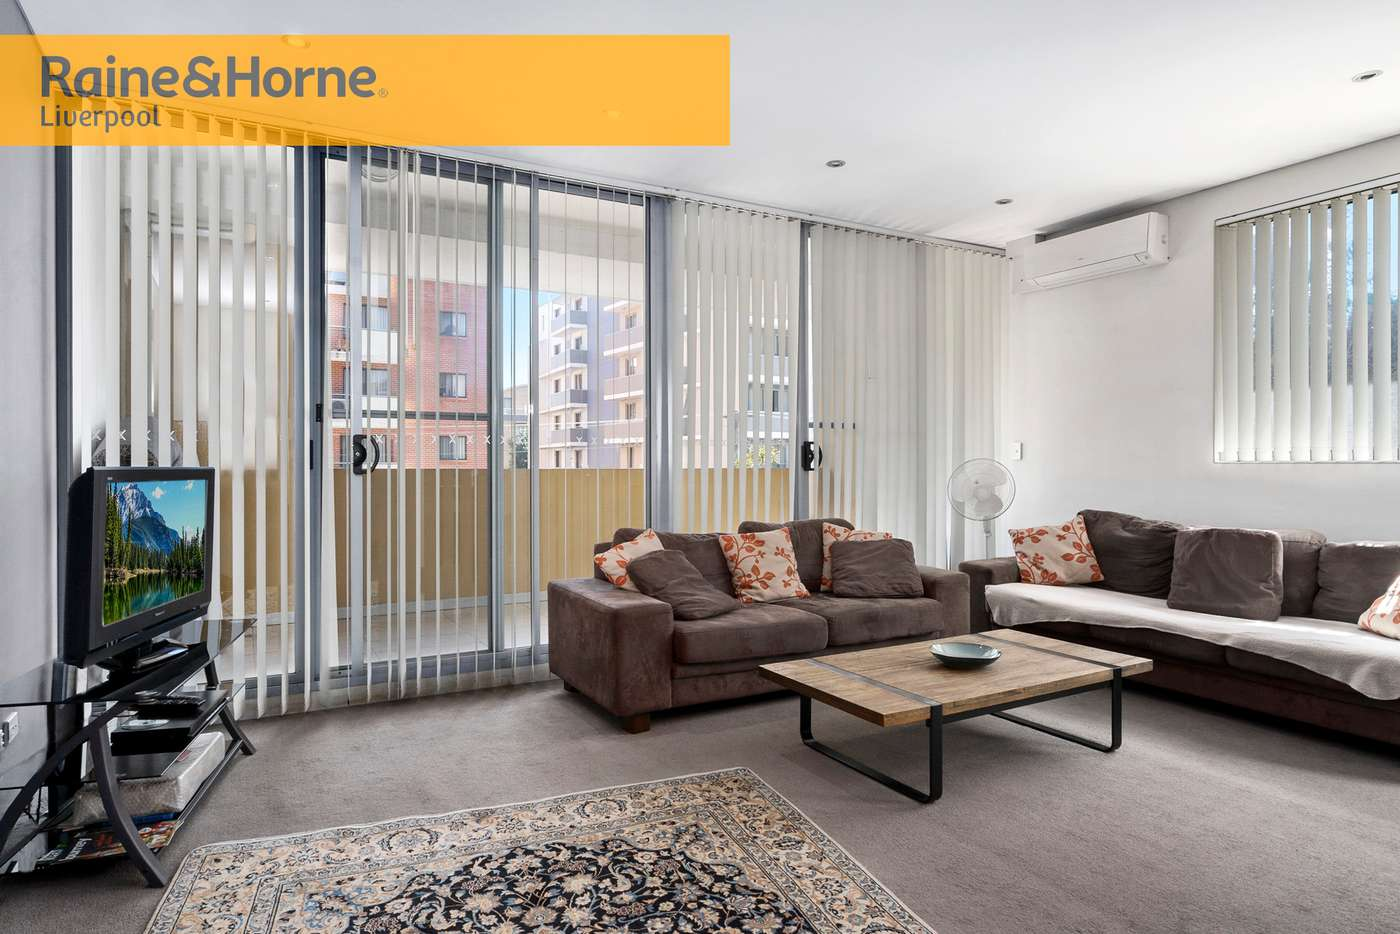 Main view of Homely unit listing, 4/12-18 Bathurst Street, Liverpool NSW 2170